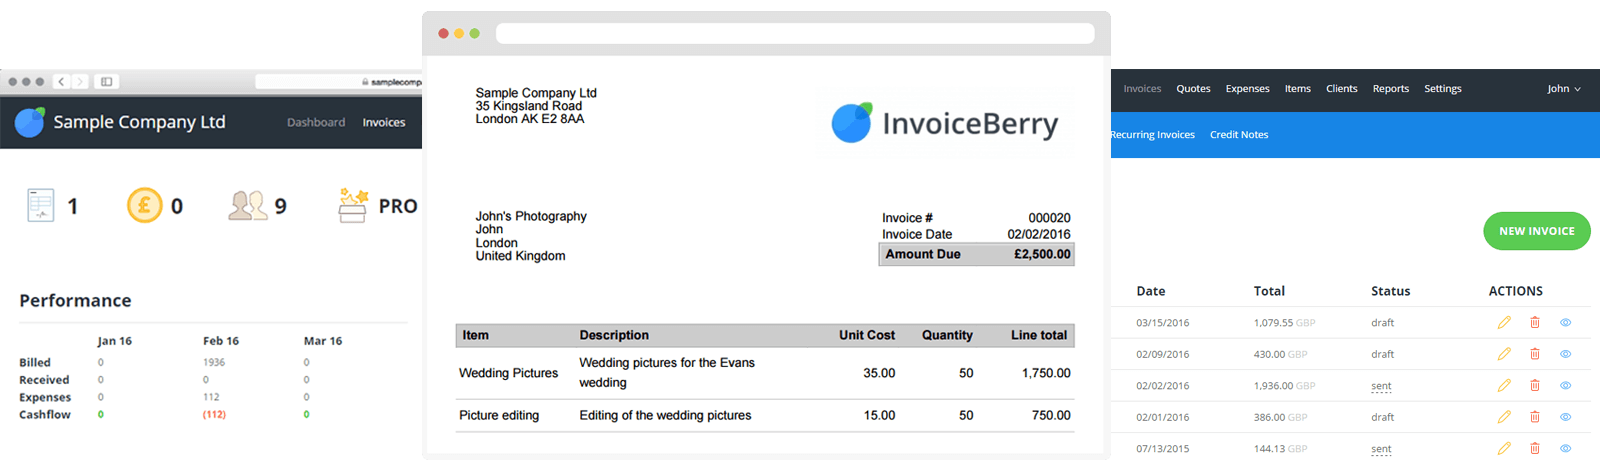 InvoiceBerry Dashboard  Create An Invoice Online